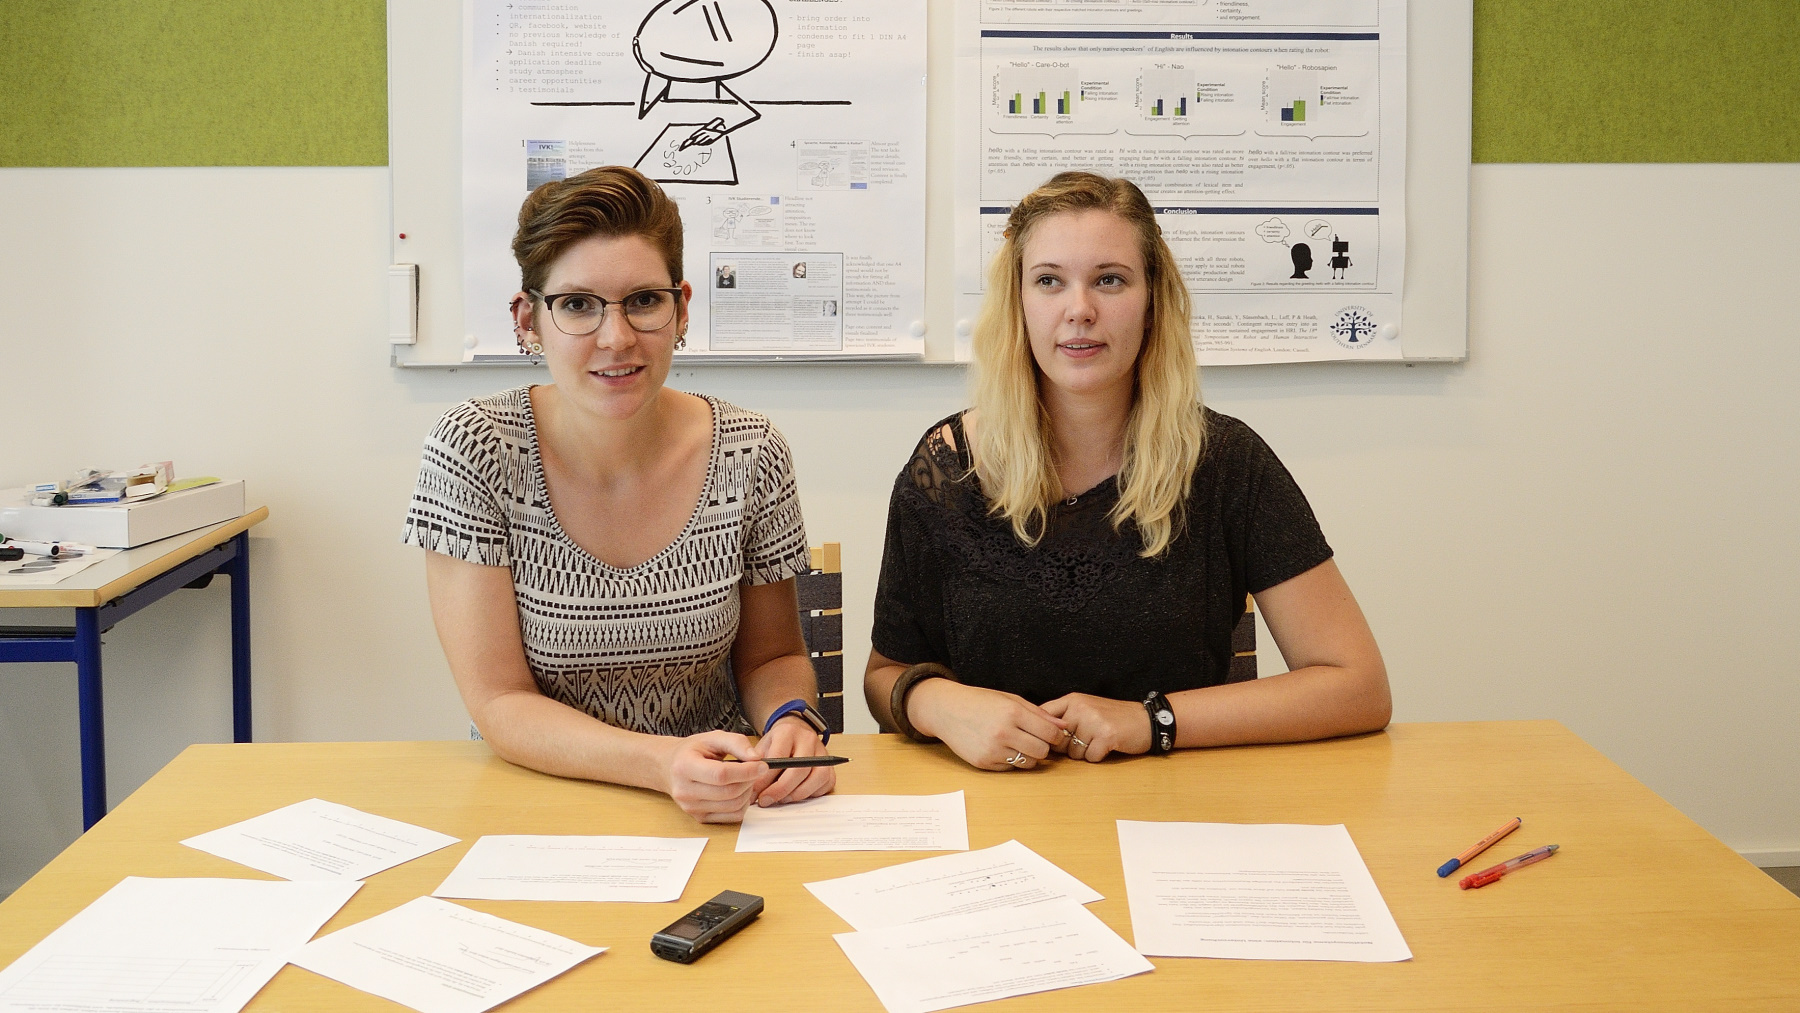 Nathalie Schümchen and Rosalyn M. Langedijk developing a concept in the HRI-lab Sønderborg.